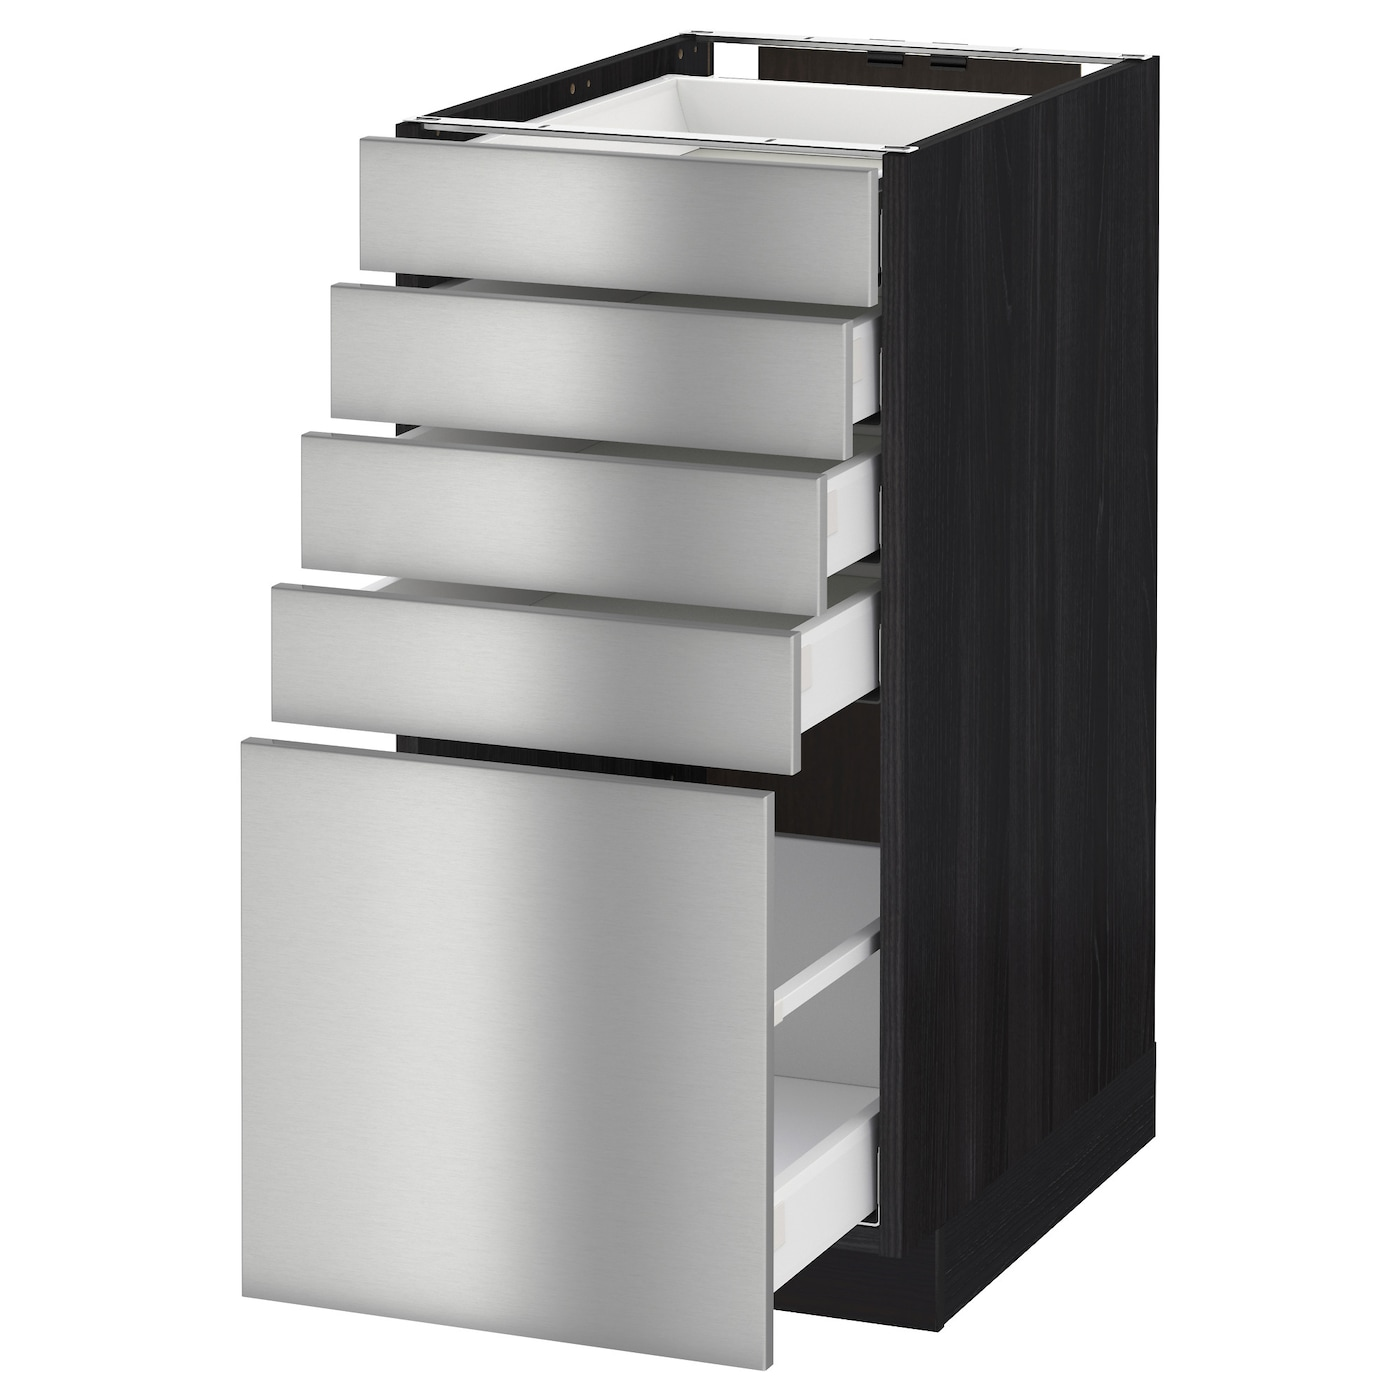 Metod maximera base cabinet with 5 drawers black grevsta for Stainless steel kitchen base cabinets